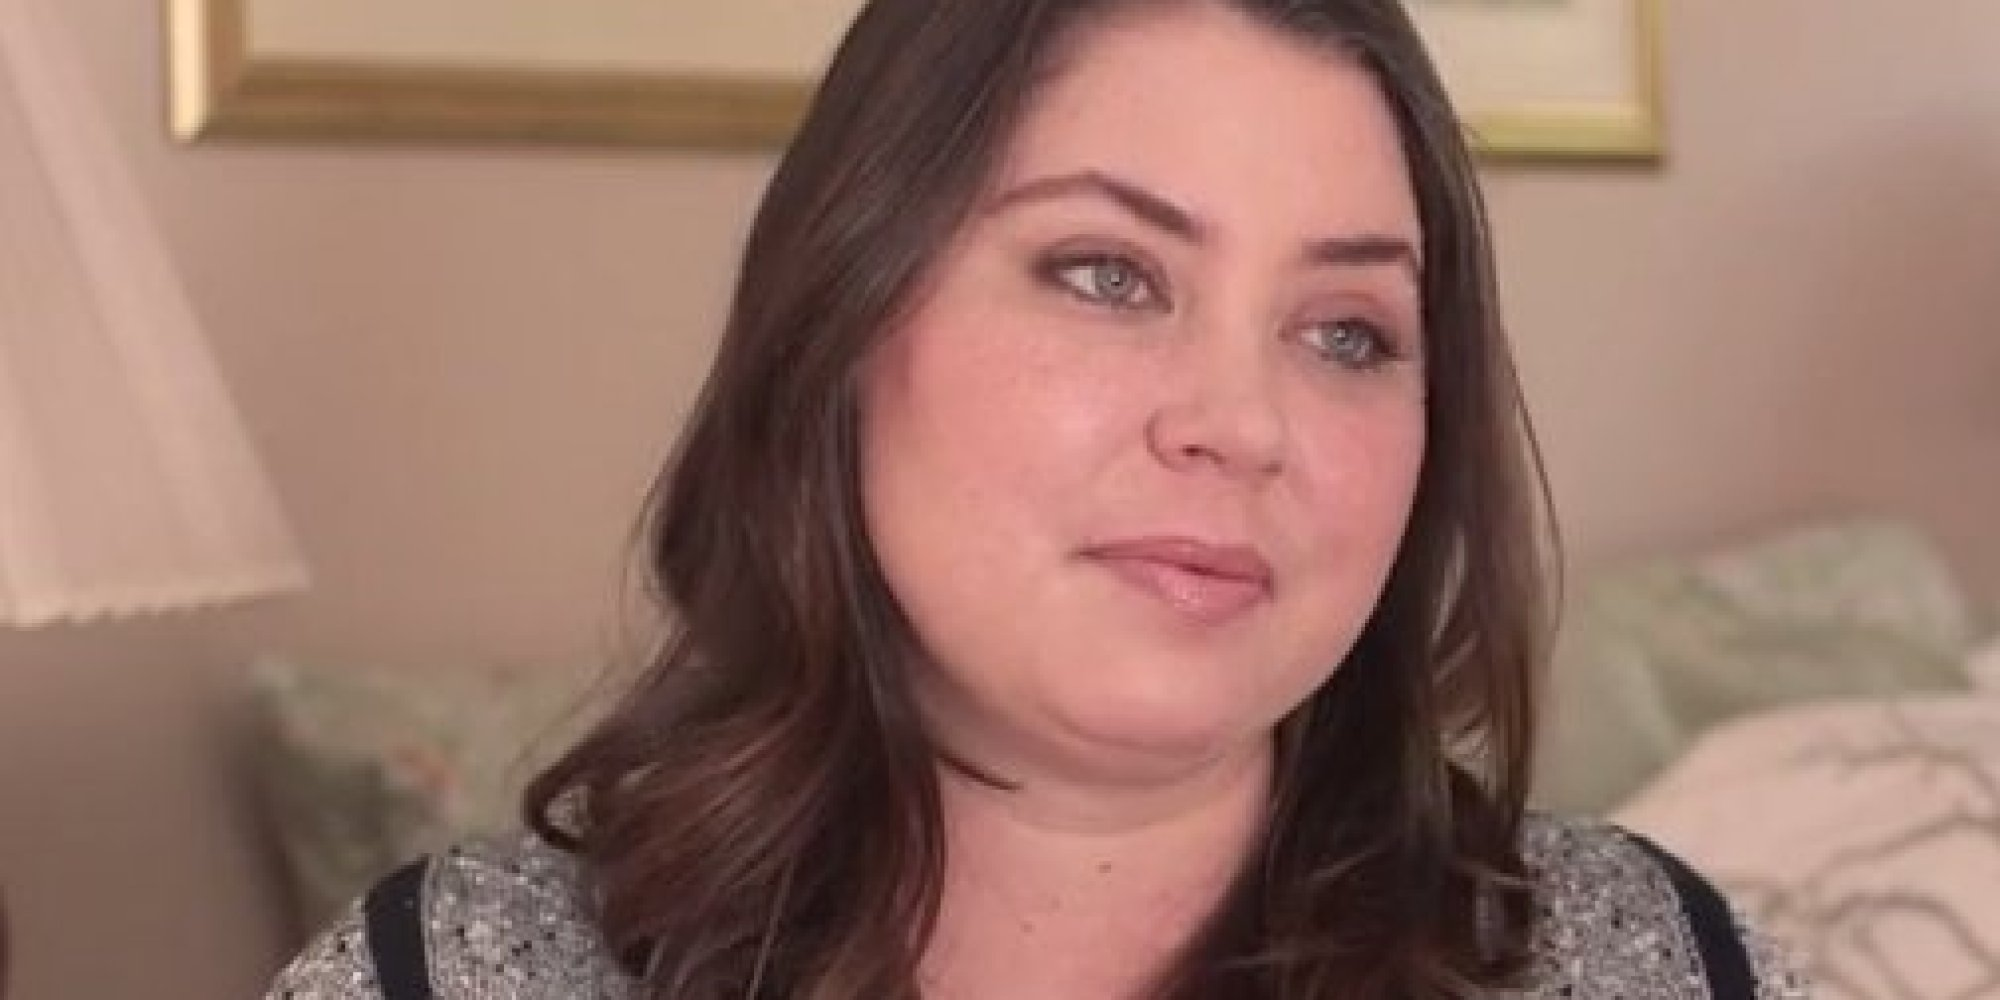 Brittany maynard family the message